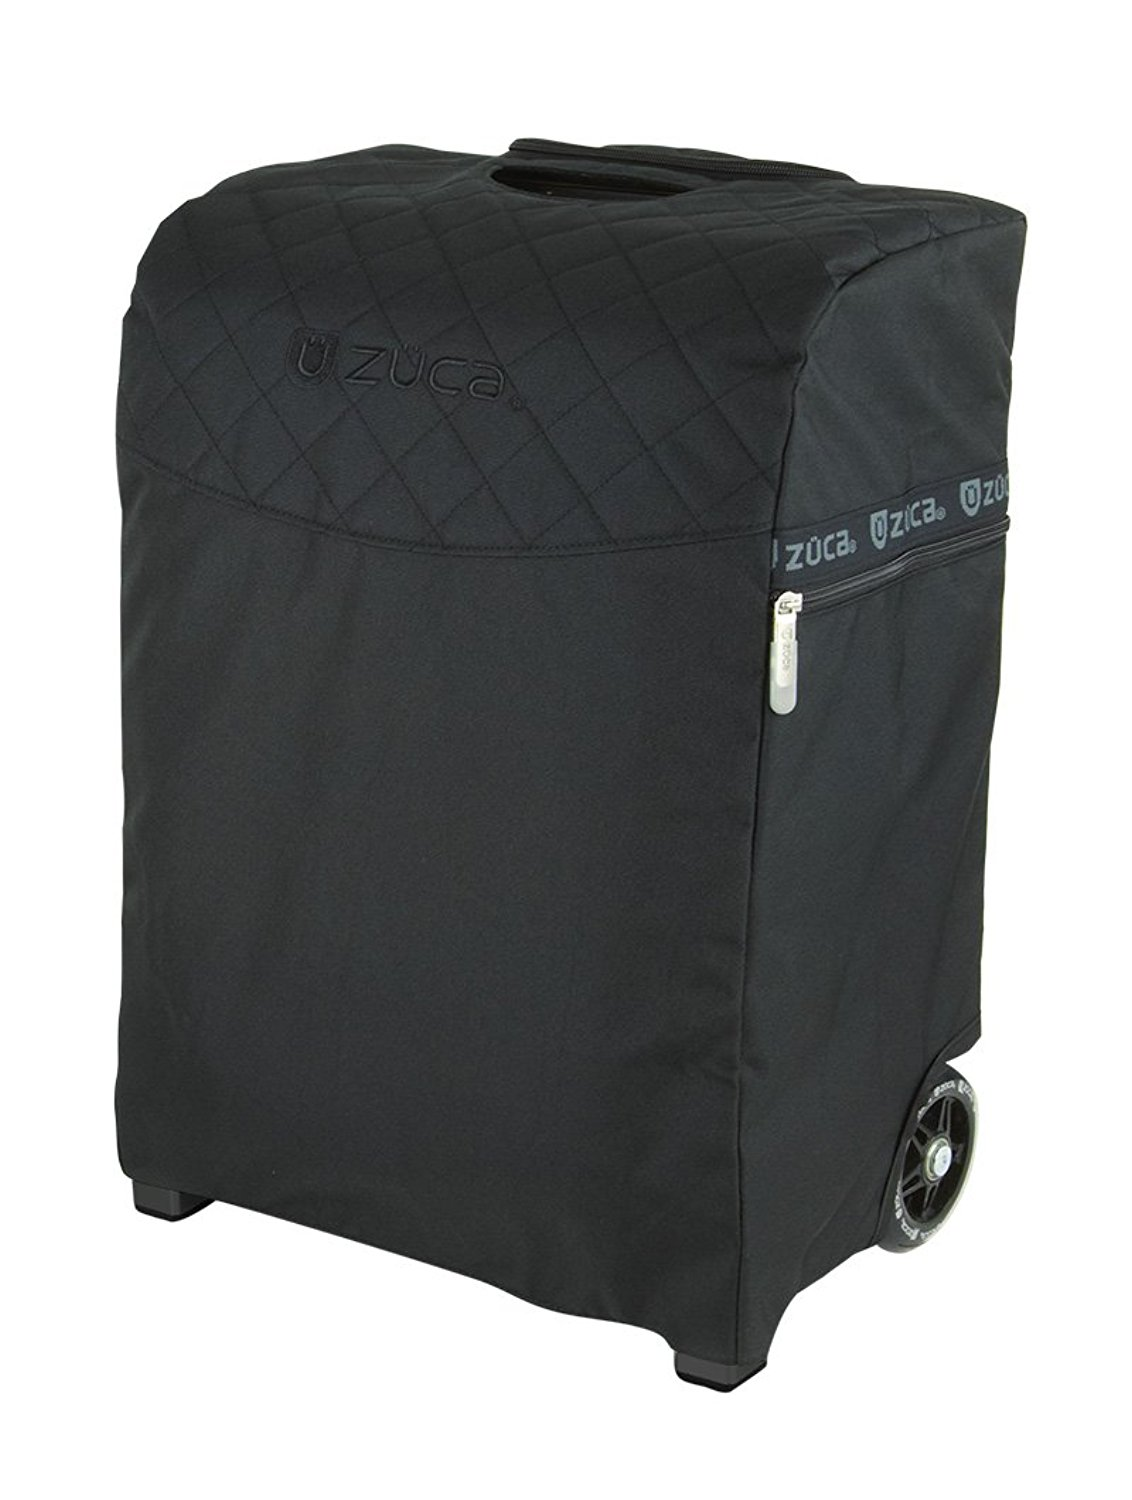 Zuca Travel Cover for Zuca Flyer Artist, Flyer Travel, or Photo Flyer (Black)